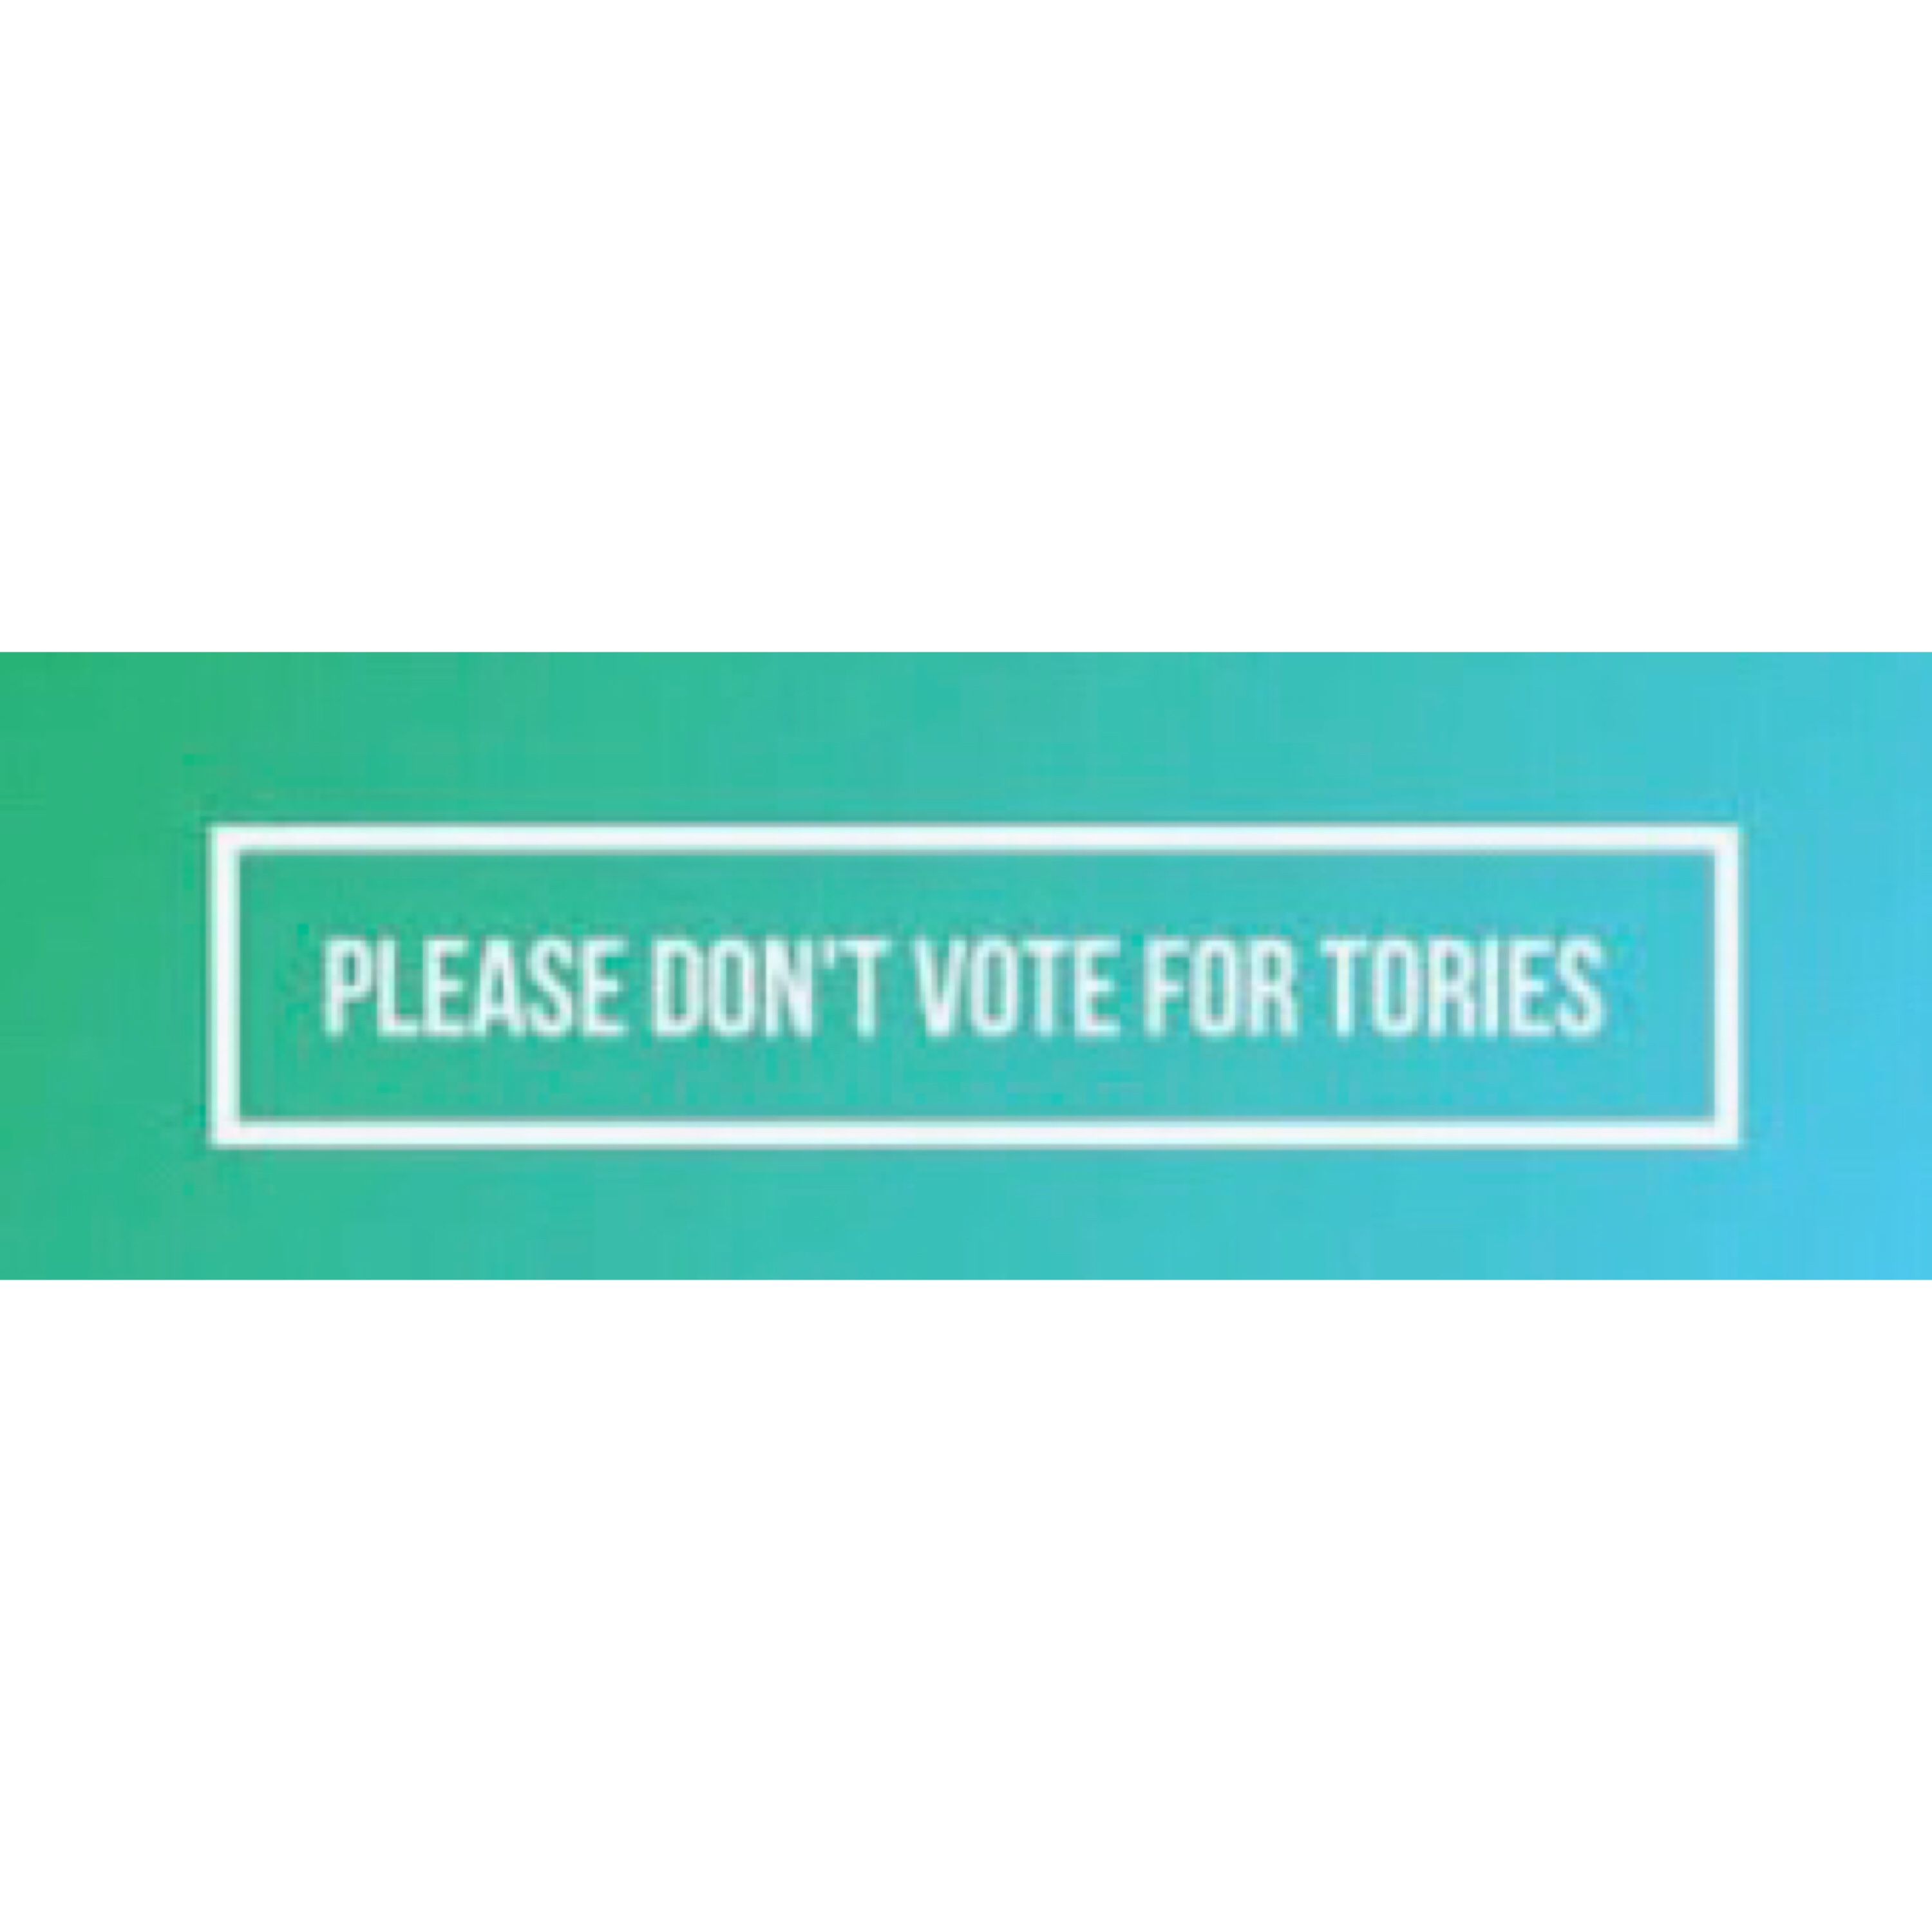 Please don't vote Tory in white letters in green background